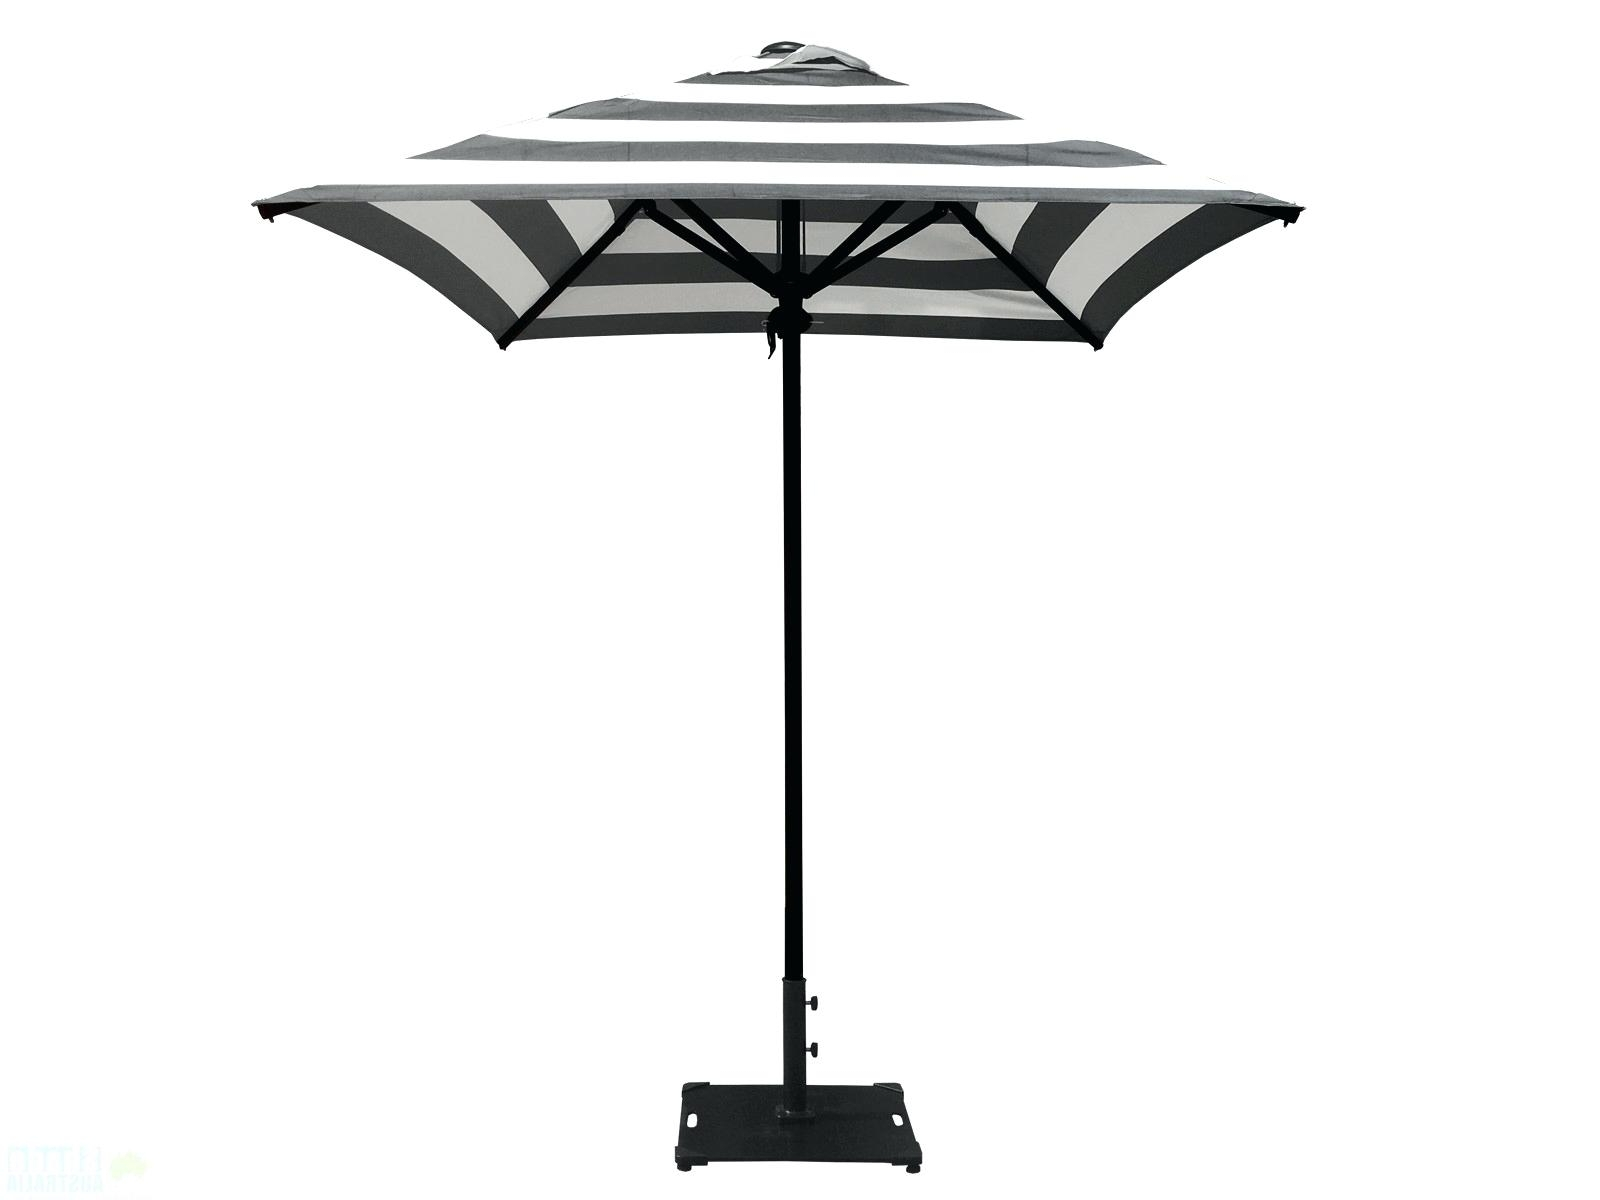 Black And White Striped Patio Umbrellas For Recent Striped Umbrella Orange Patio Yellow Beach – Rockforriley (View 4 of 20)